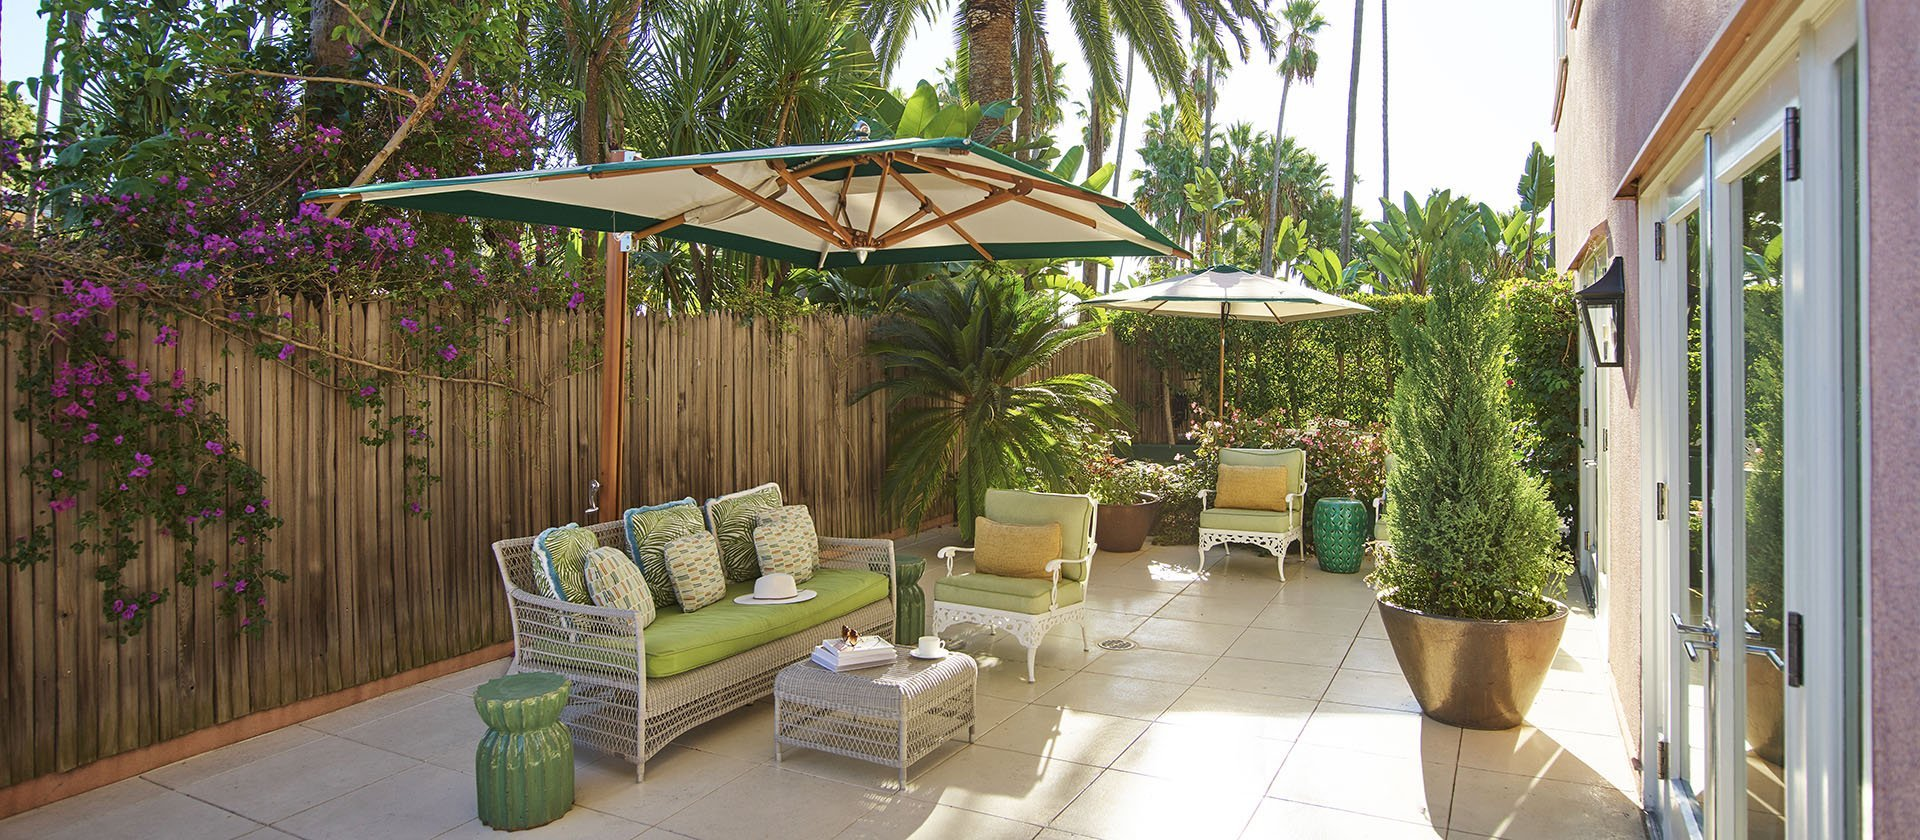 Patio with outdoor furniture and tropical plants